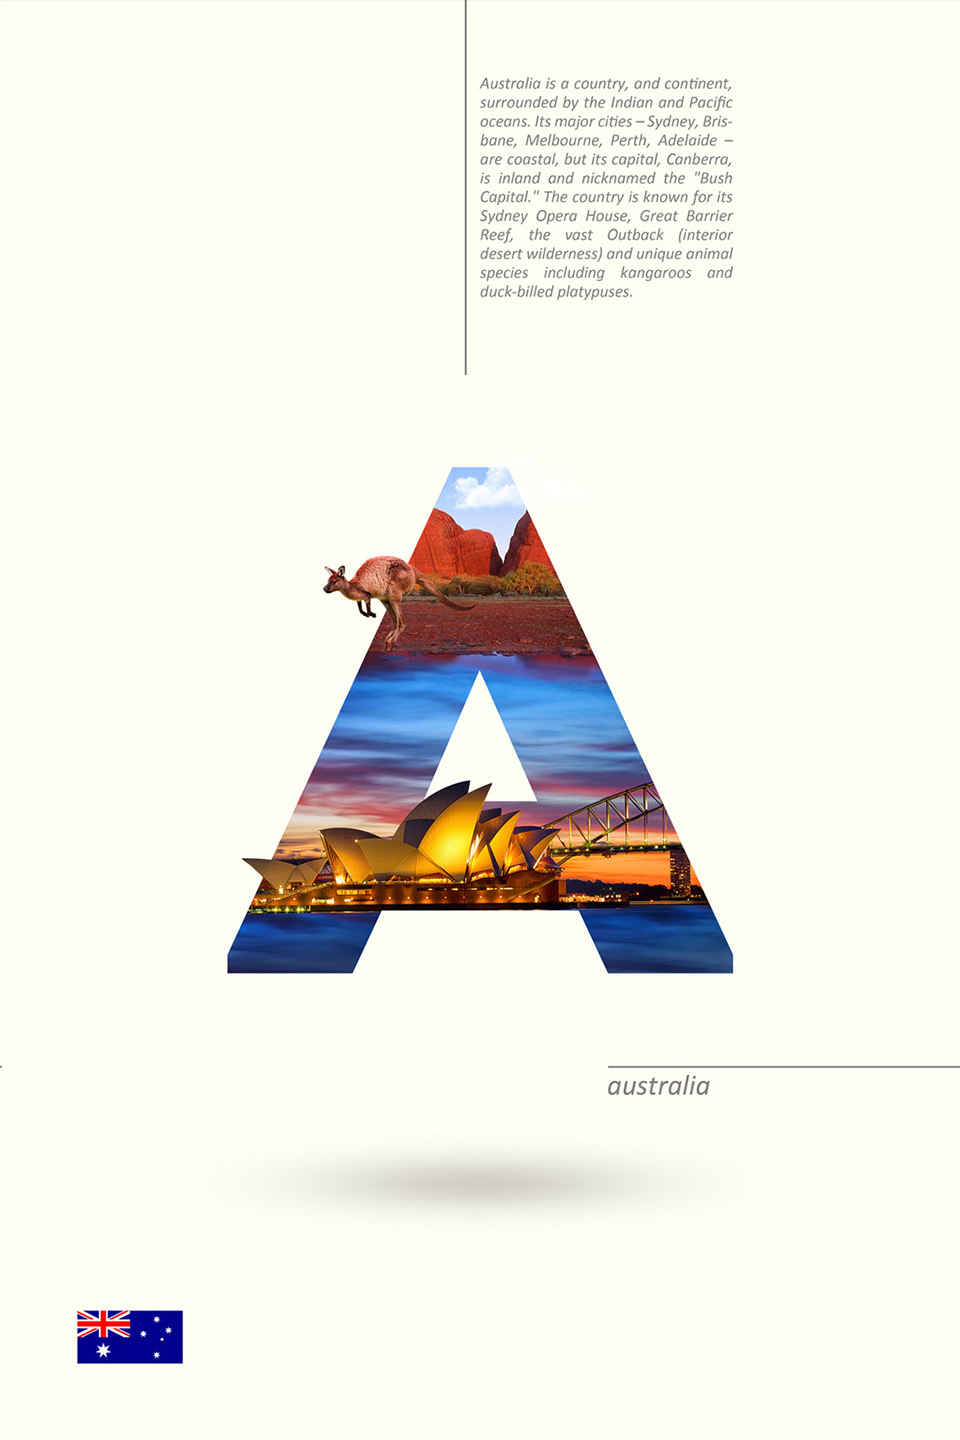 Beautiful Alphabet Series Of Countries And Their Iconic Landmarks - Australia